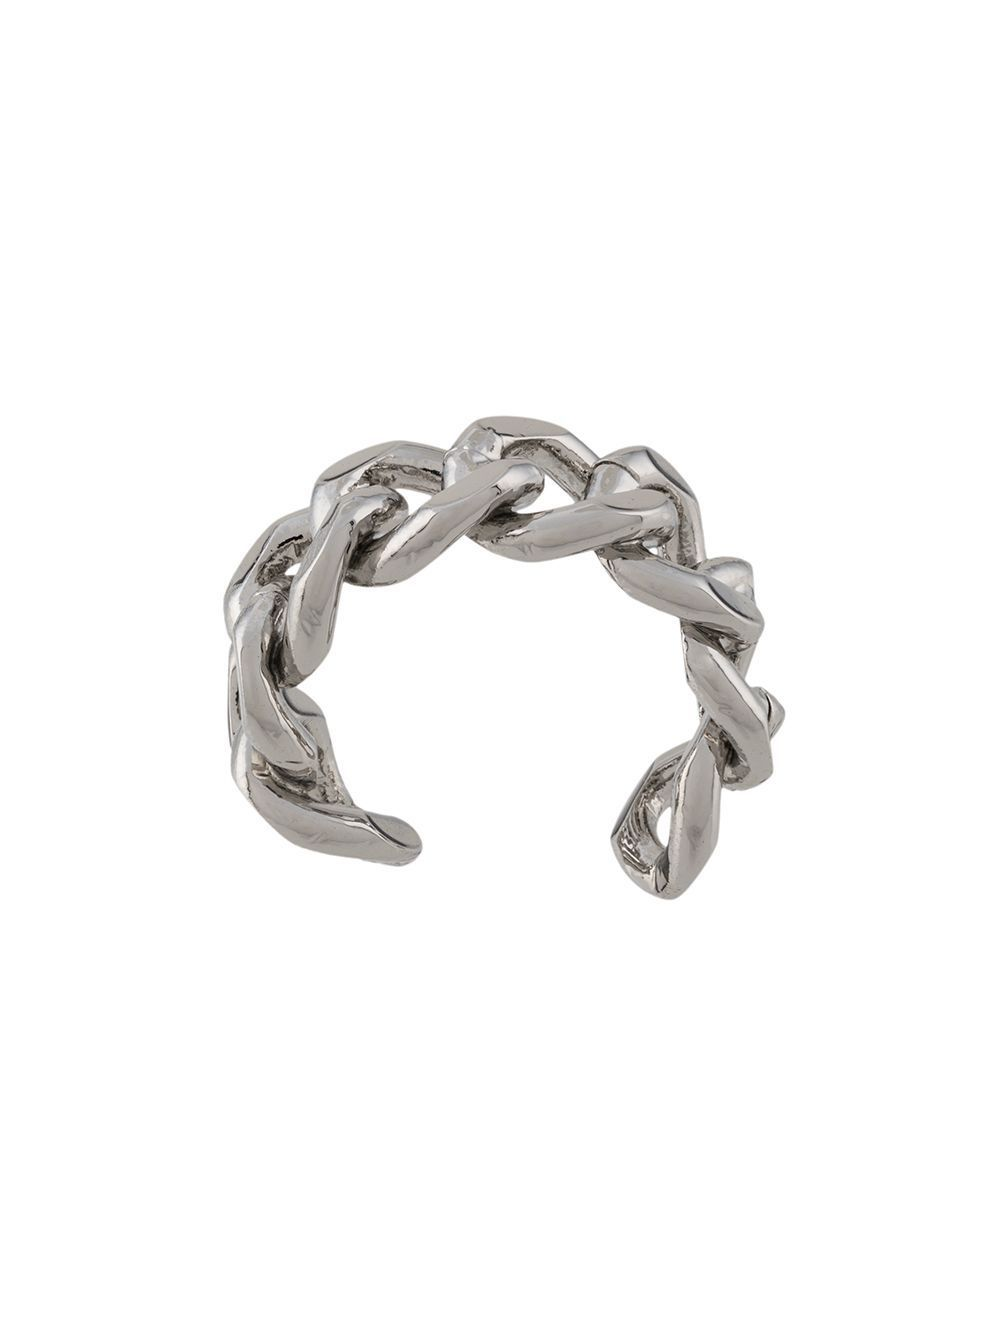 FEDERICA TOSI WOMEN'S FT0110RINGCHAINSILVER SILVER METAL RING